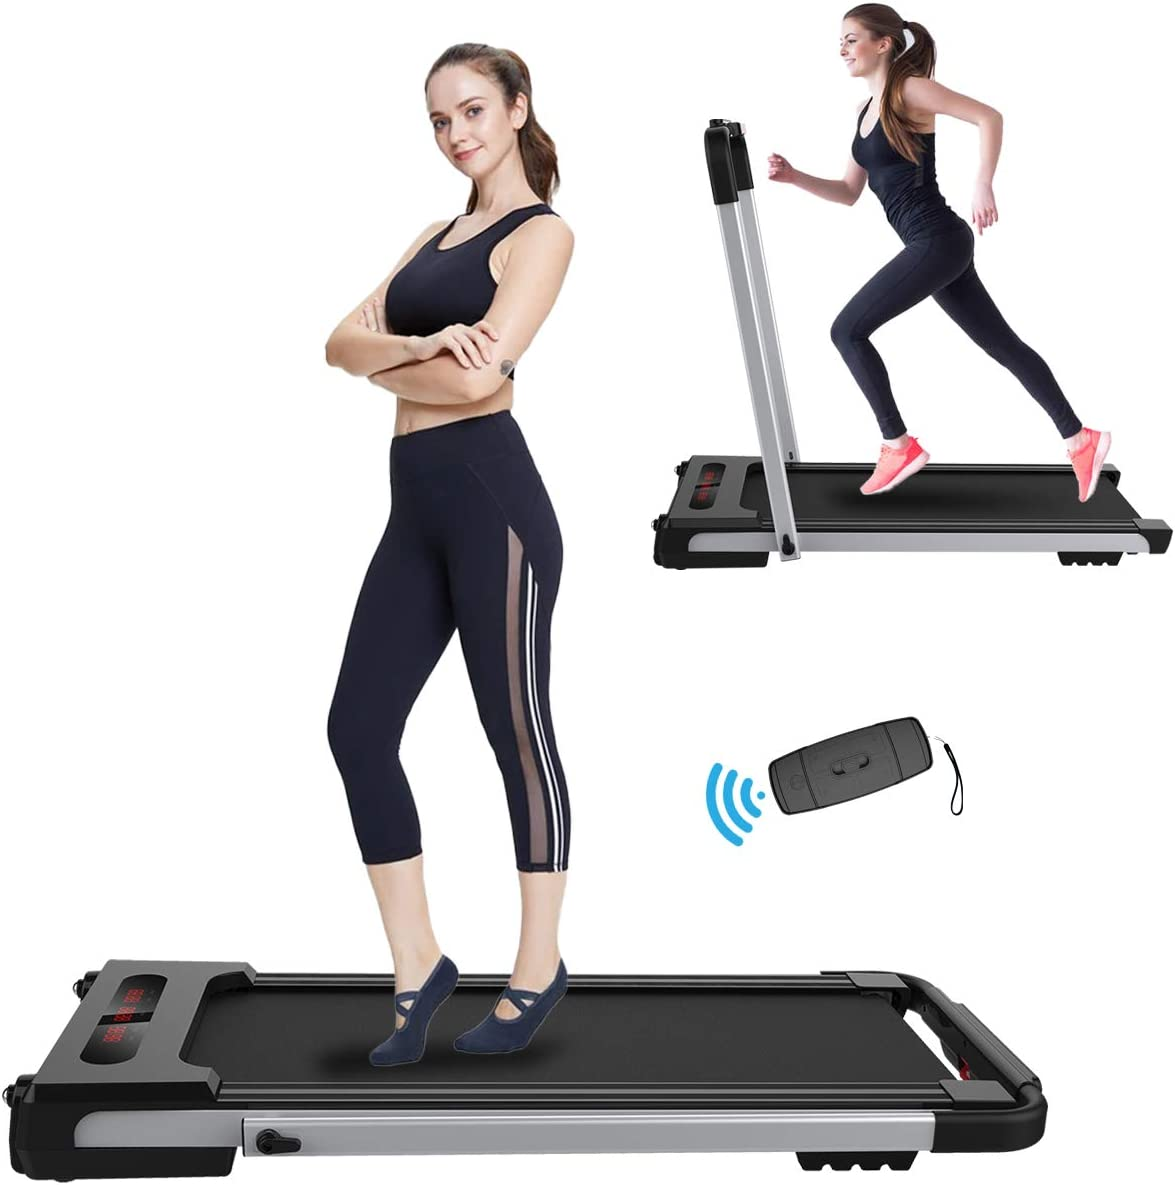 2 in 1 Folding Treadmill Under Desk Electric Treadmill Walking Running Exercise Machine with LED Display, Bluetooth Speaker & Remote Controller, Motorized Treadmill for Home Office (Installation-Free)